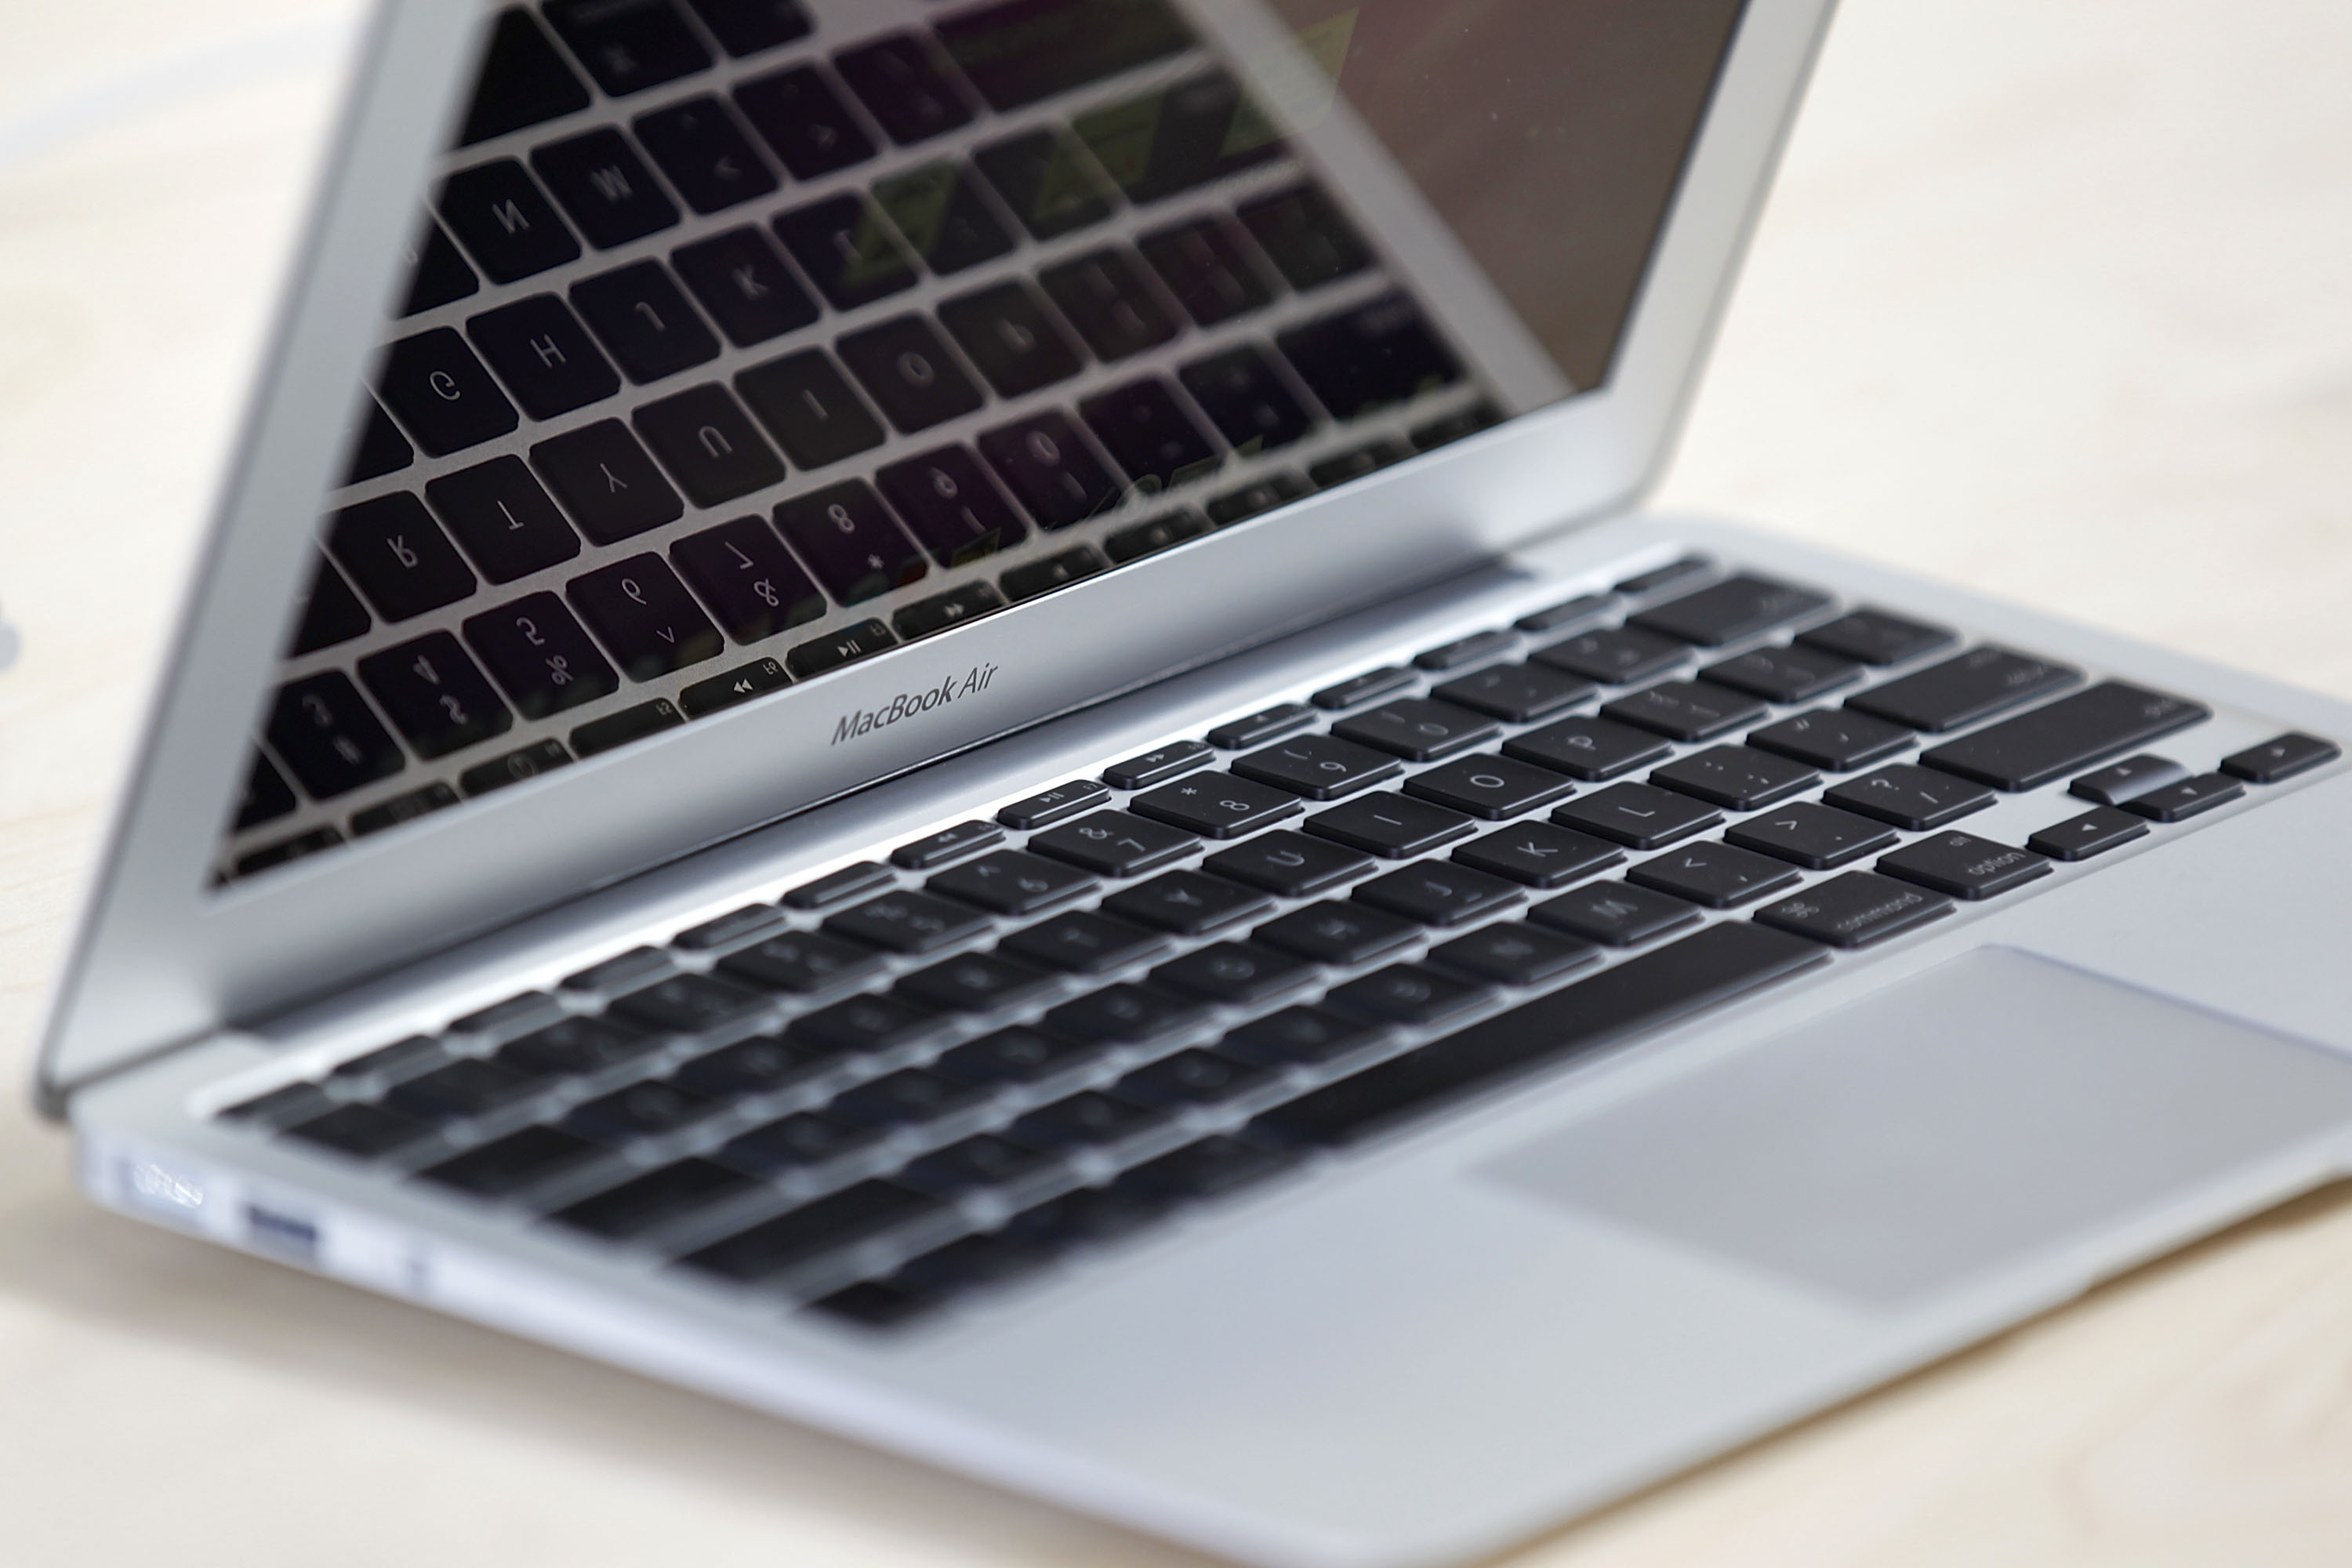 The new 11-inch MacBook Air is displayed at the new Apple Store during a media preview on October 21, 2010 in Chicago, Illinois.